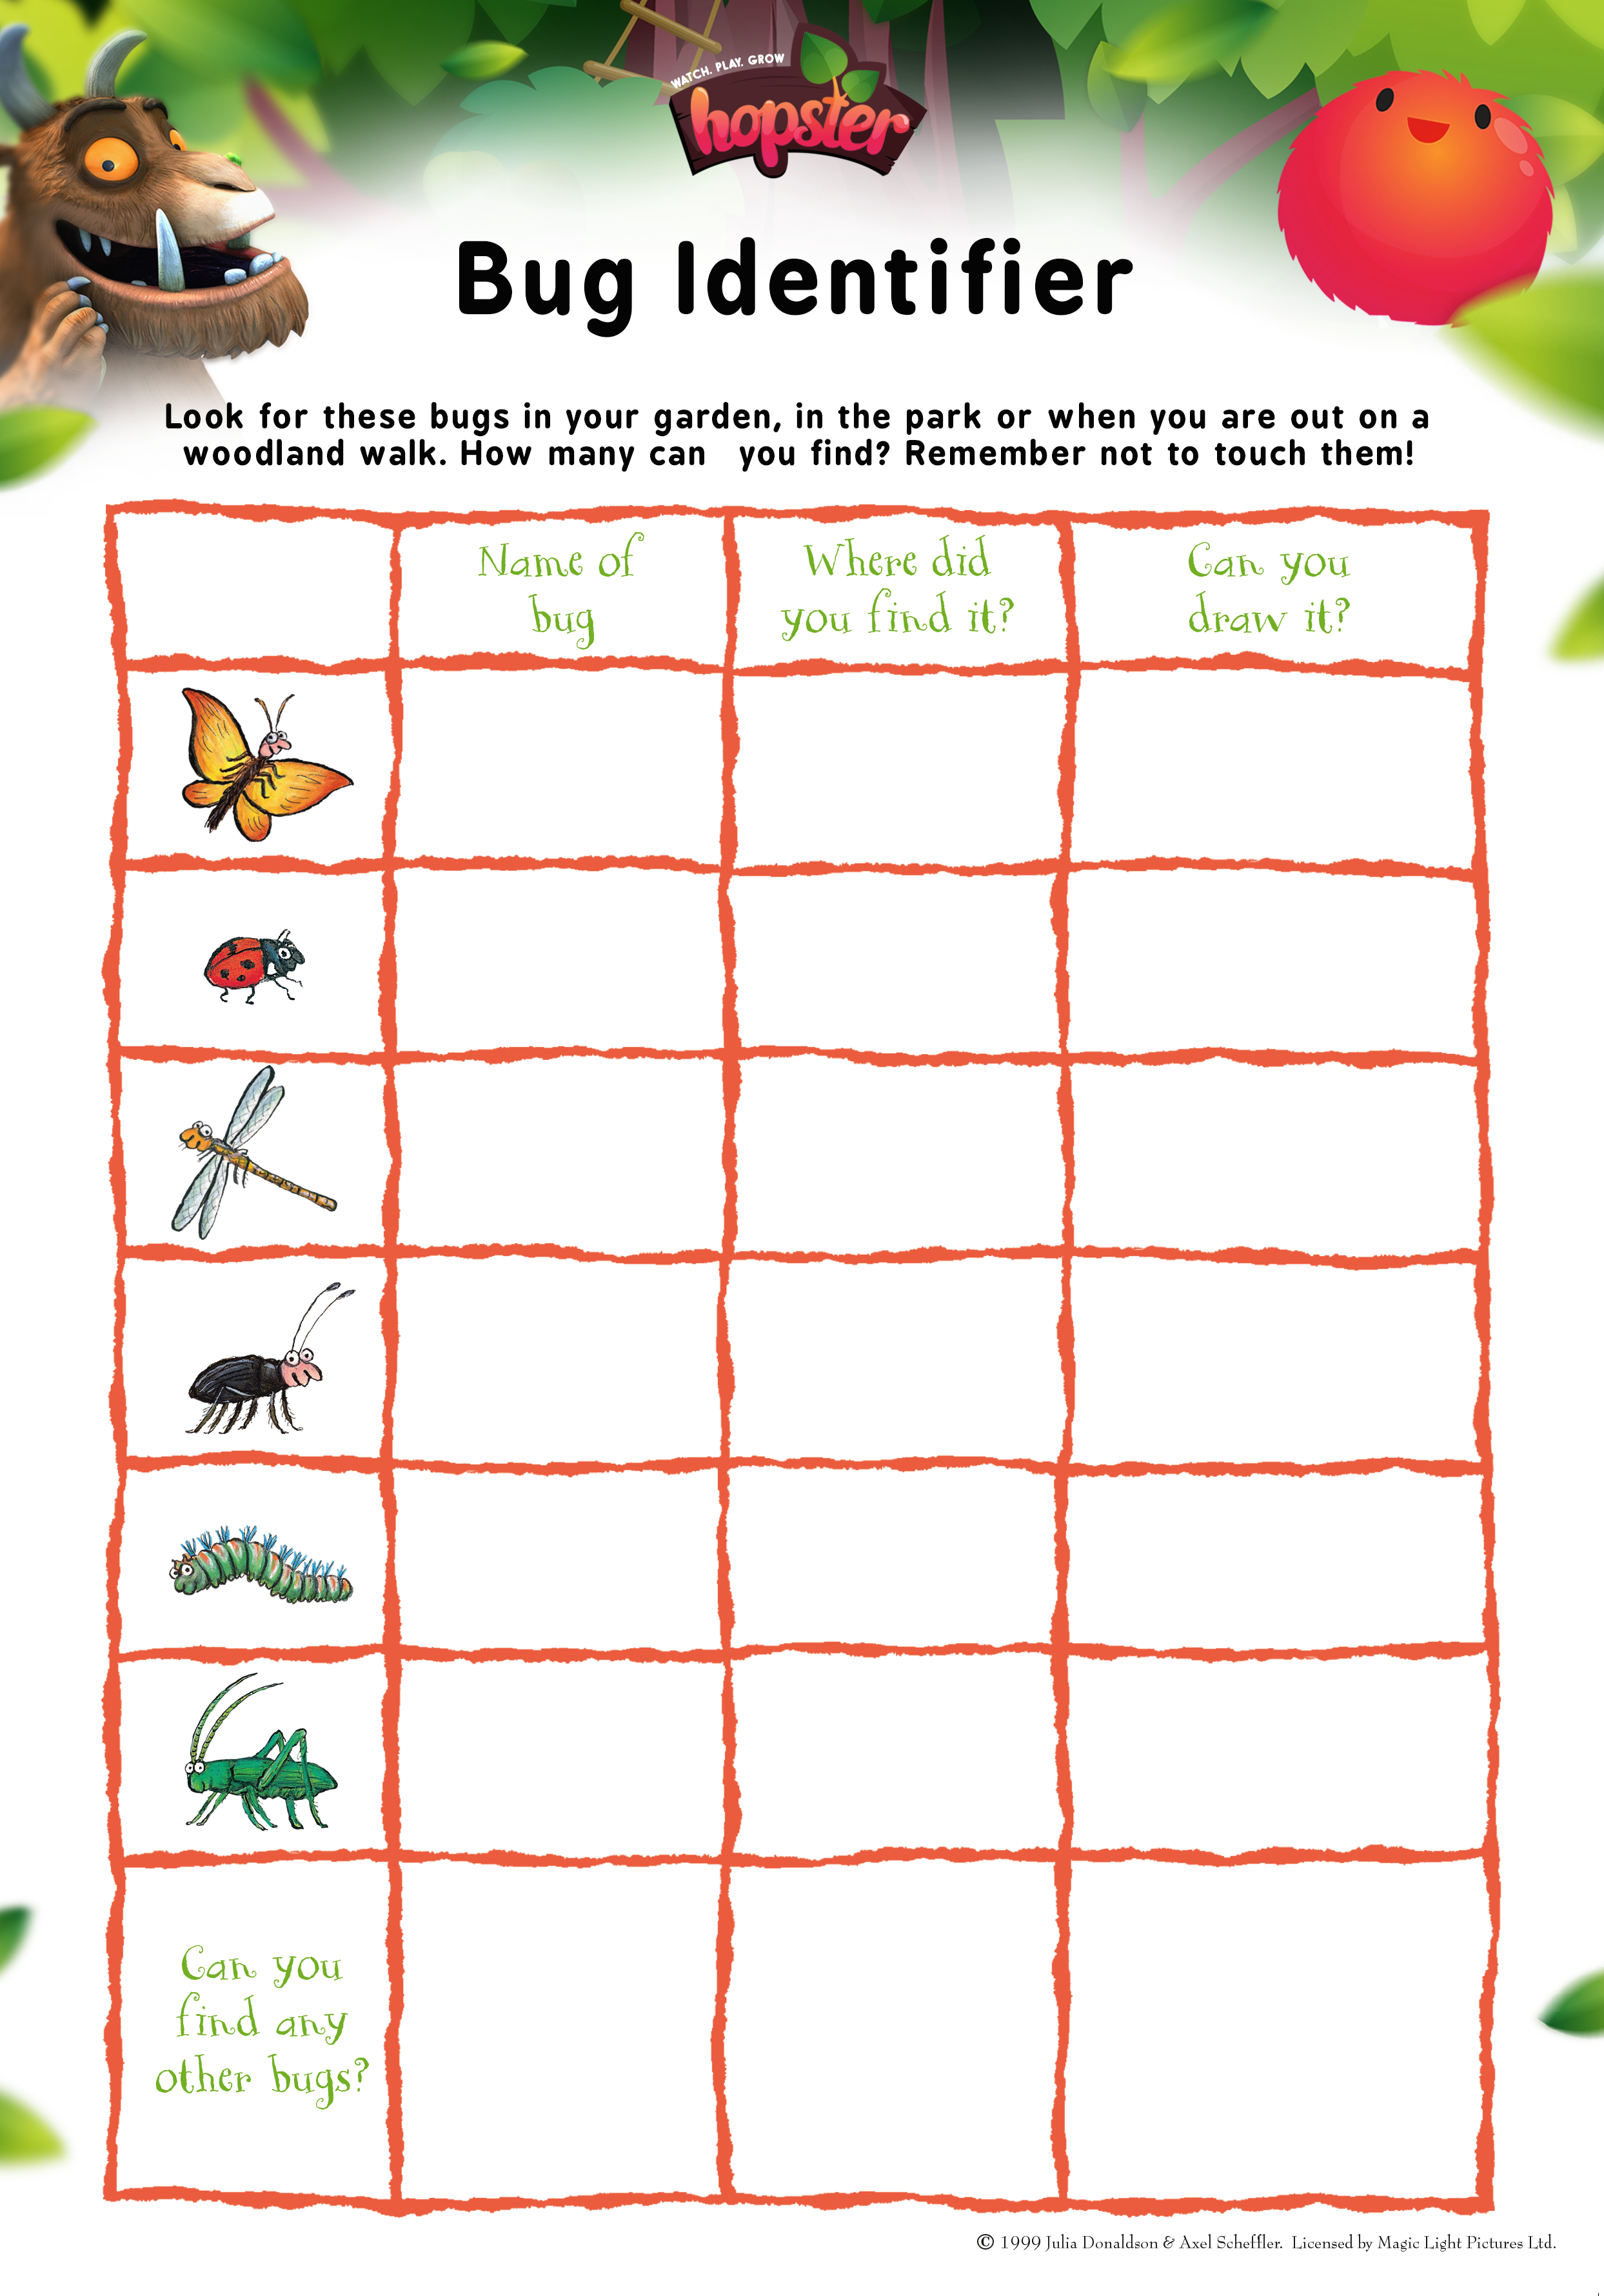 What S That Bug Identify The Creepy Crawlies In The